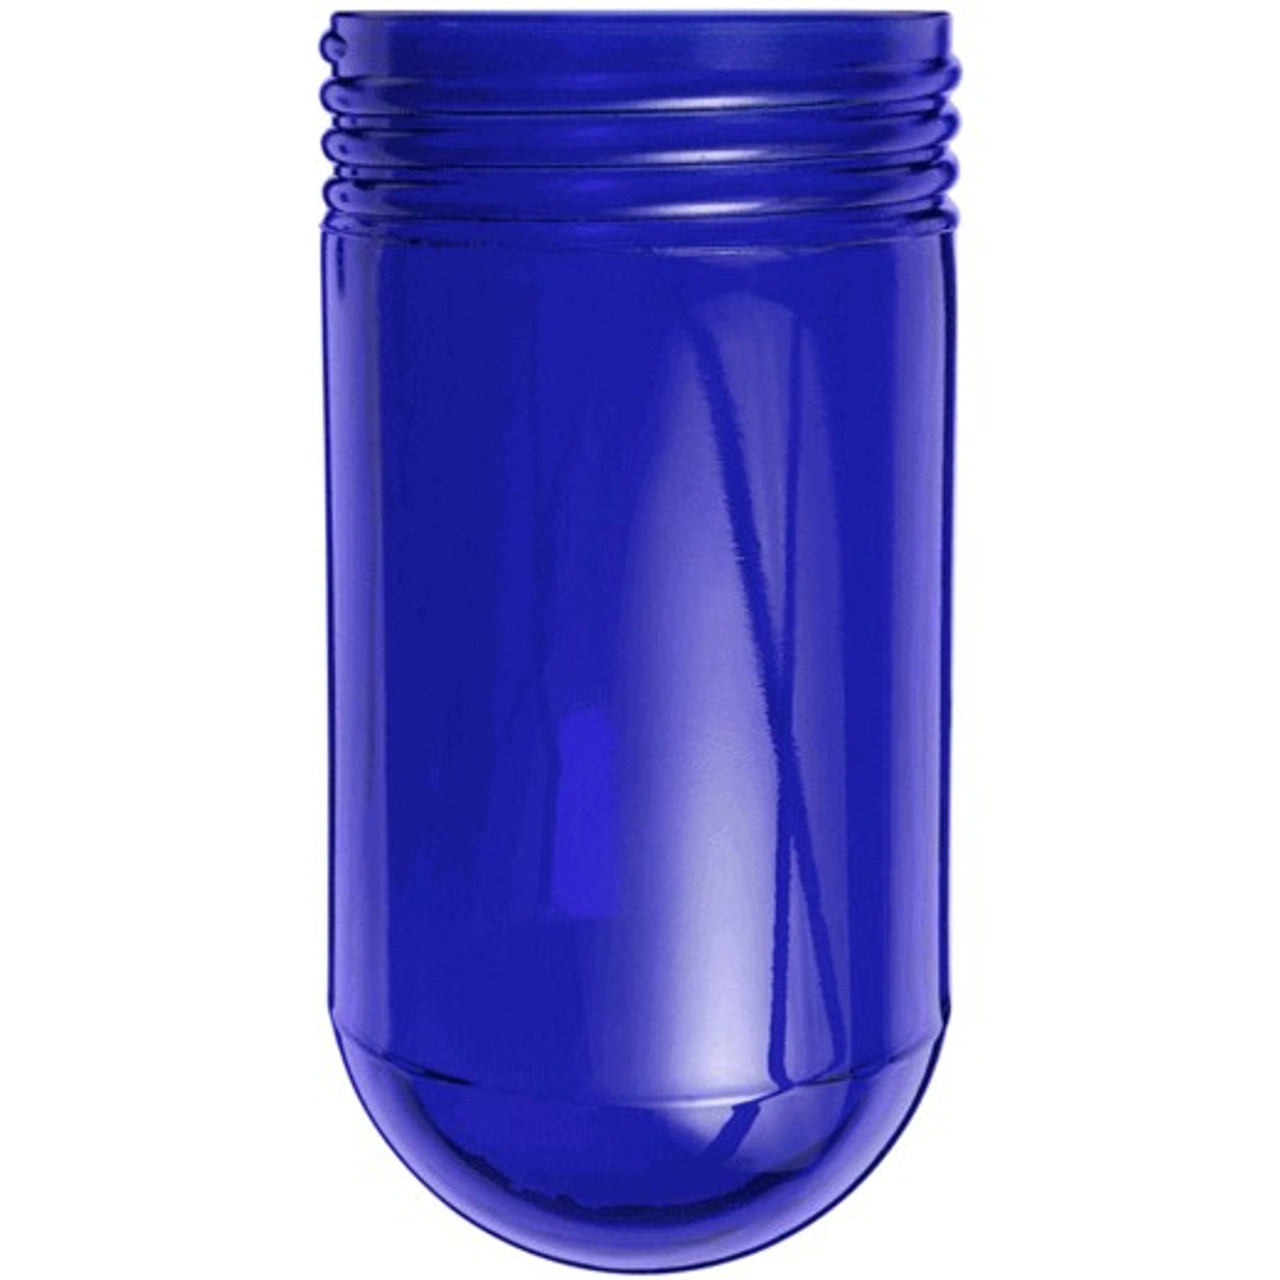 Blue mason jar glass